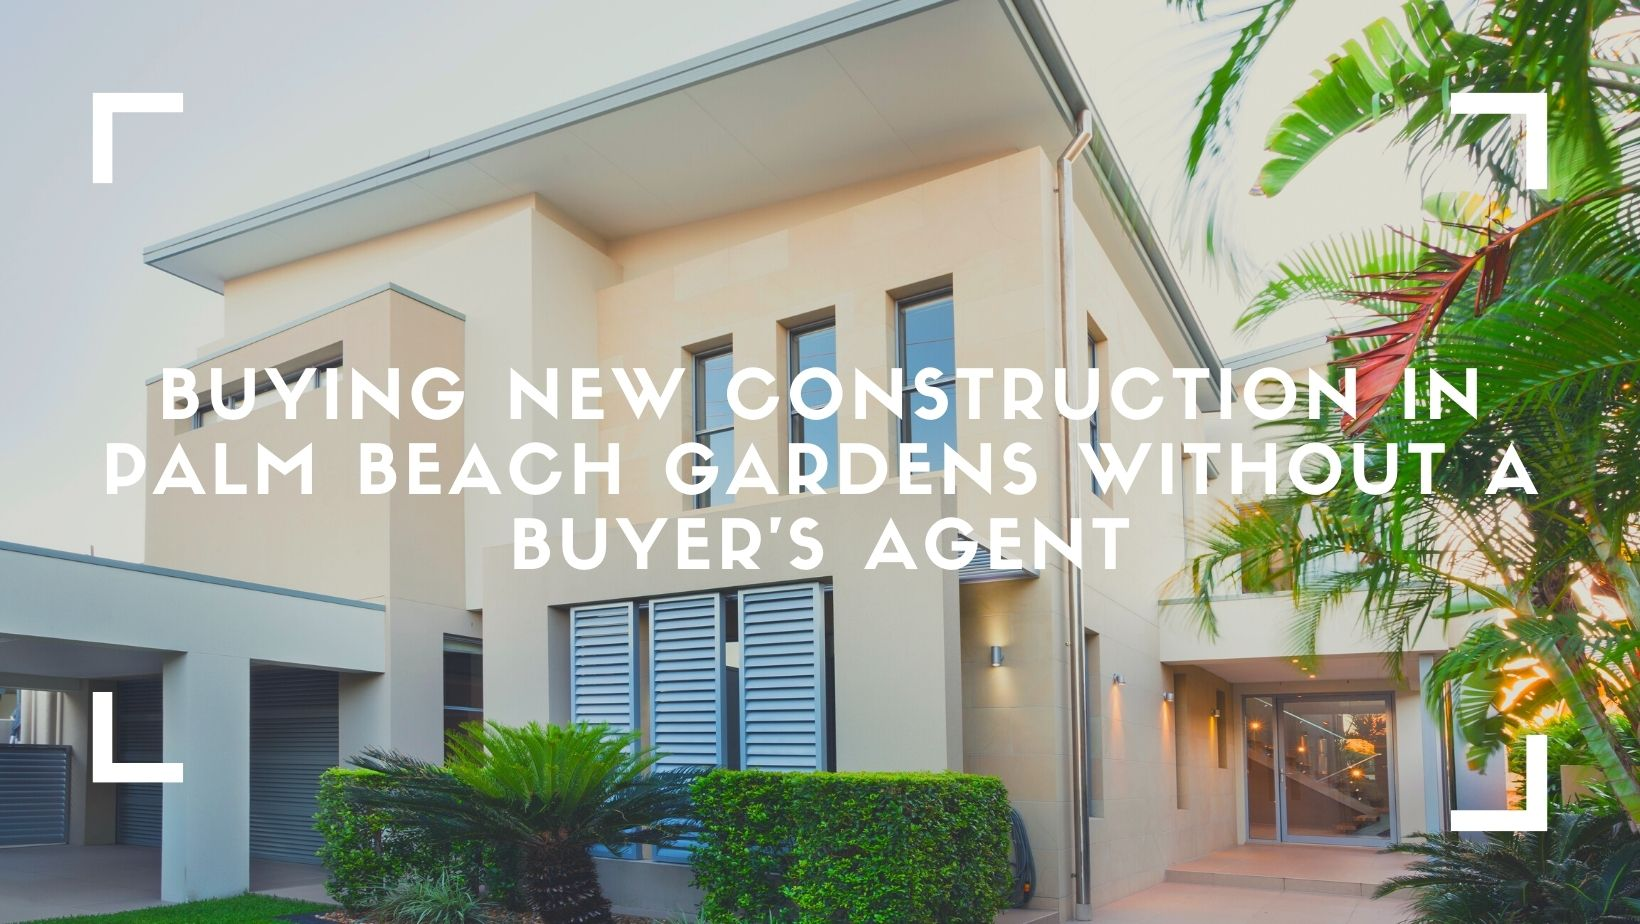 Buying New Construction in Palm Beach Gardens Without a Buyer's Agent